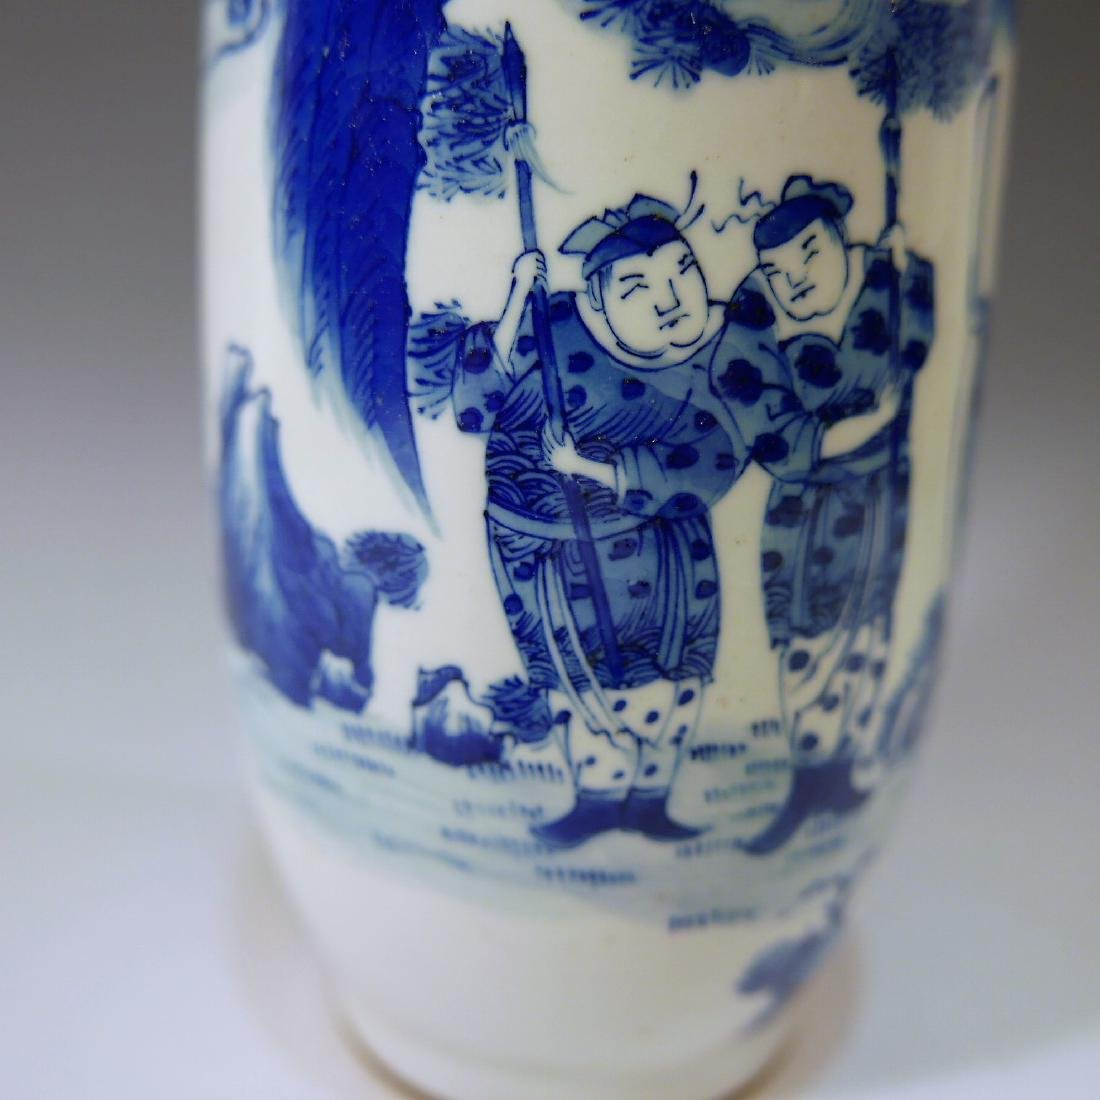 CHINESE ANTIQUE BLUE AND WHITE VASE - 18TH CENTURY - 5